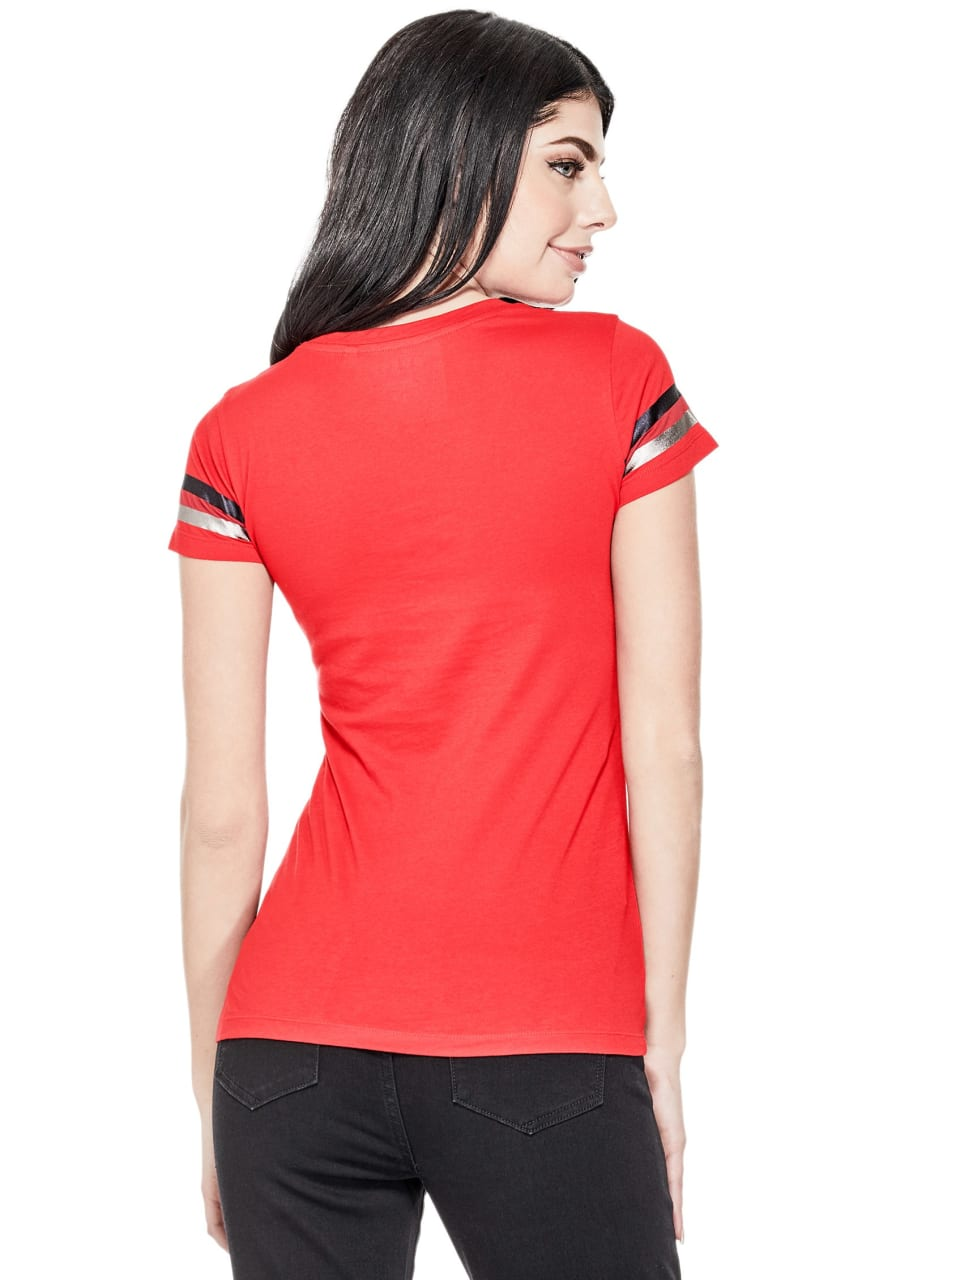 GUESS-Factory-Women-039-s-Las-Vegas-City-Tee thumbnail 15